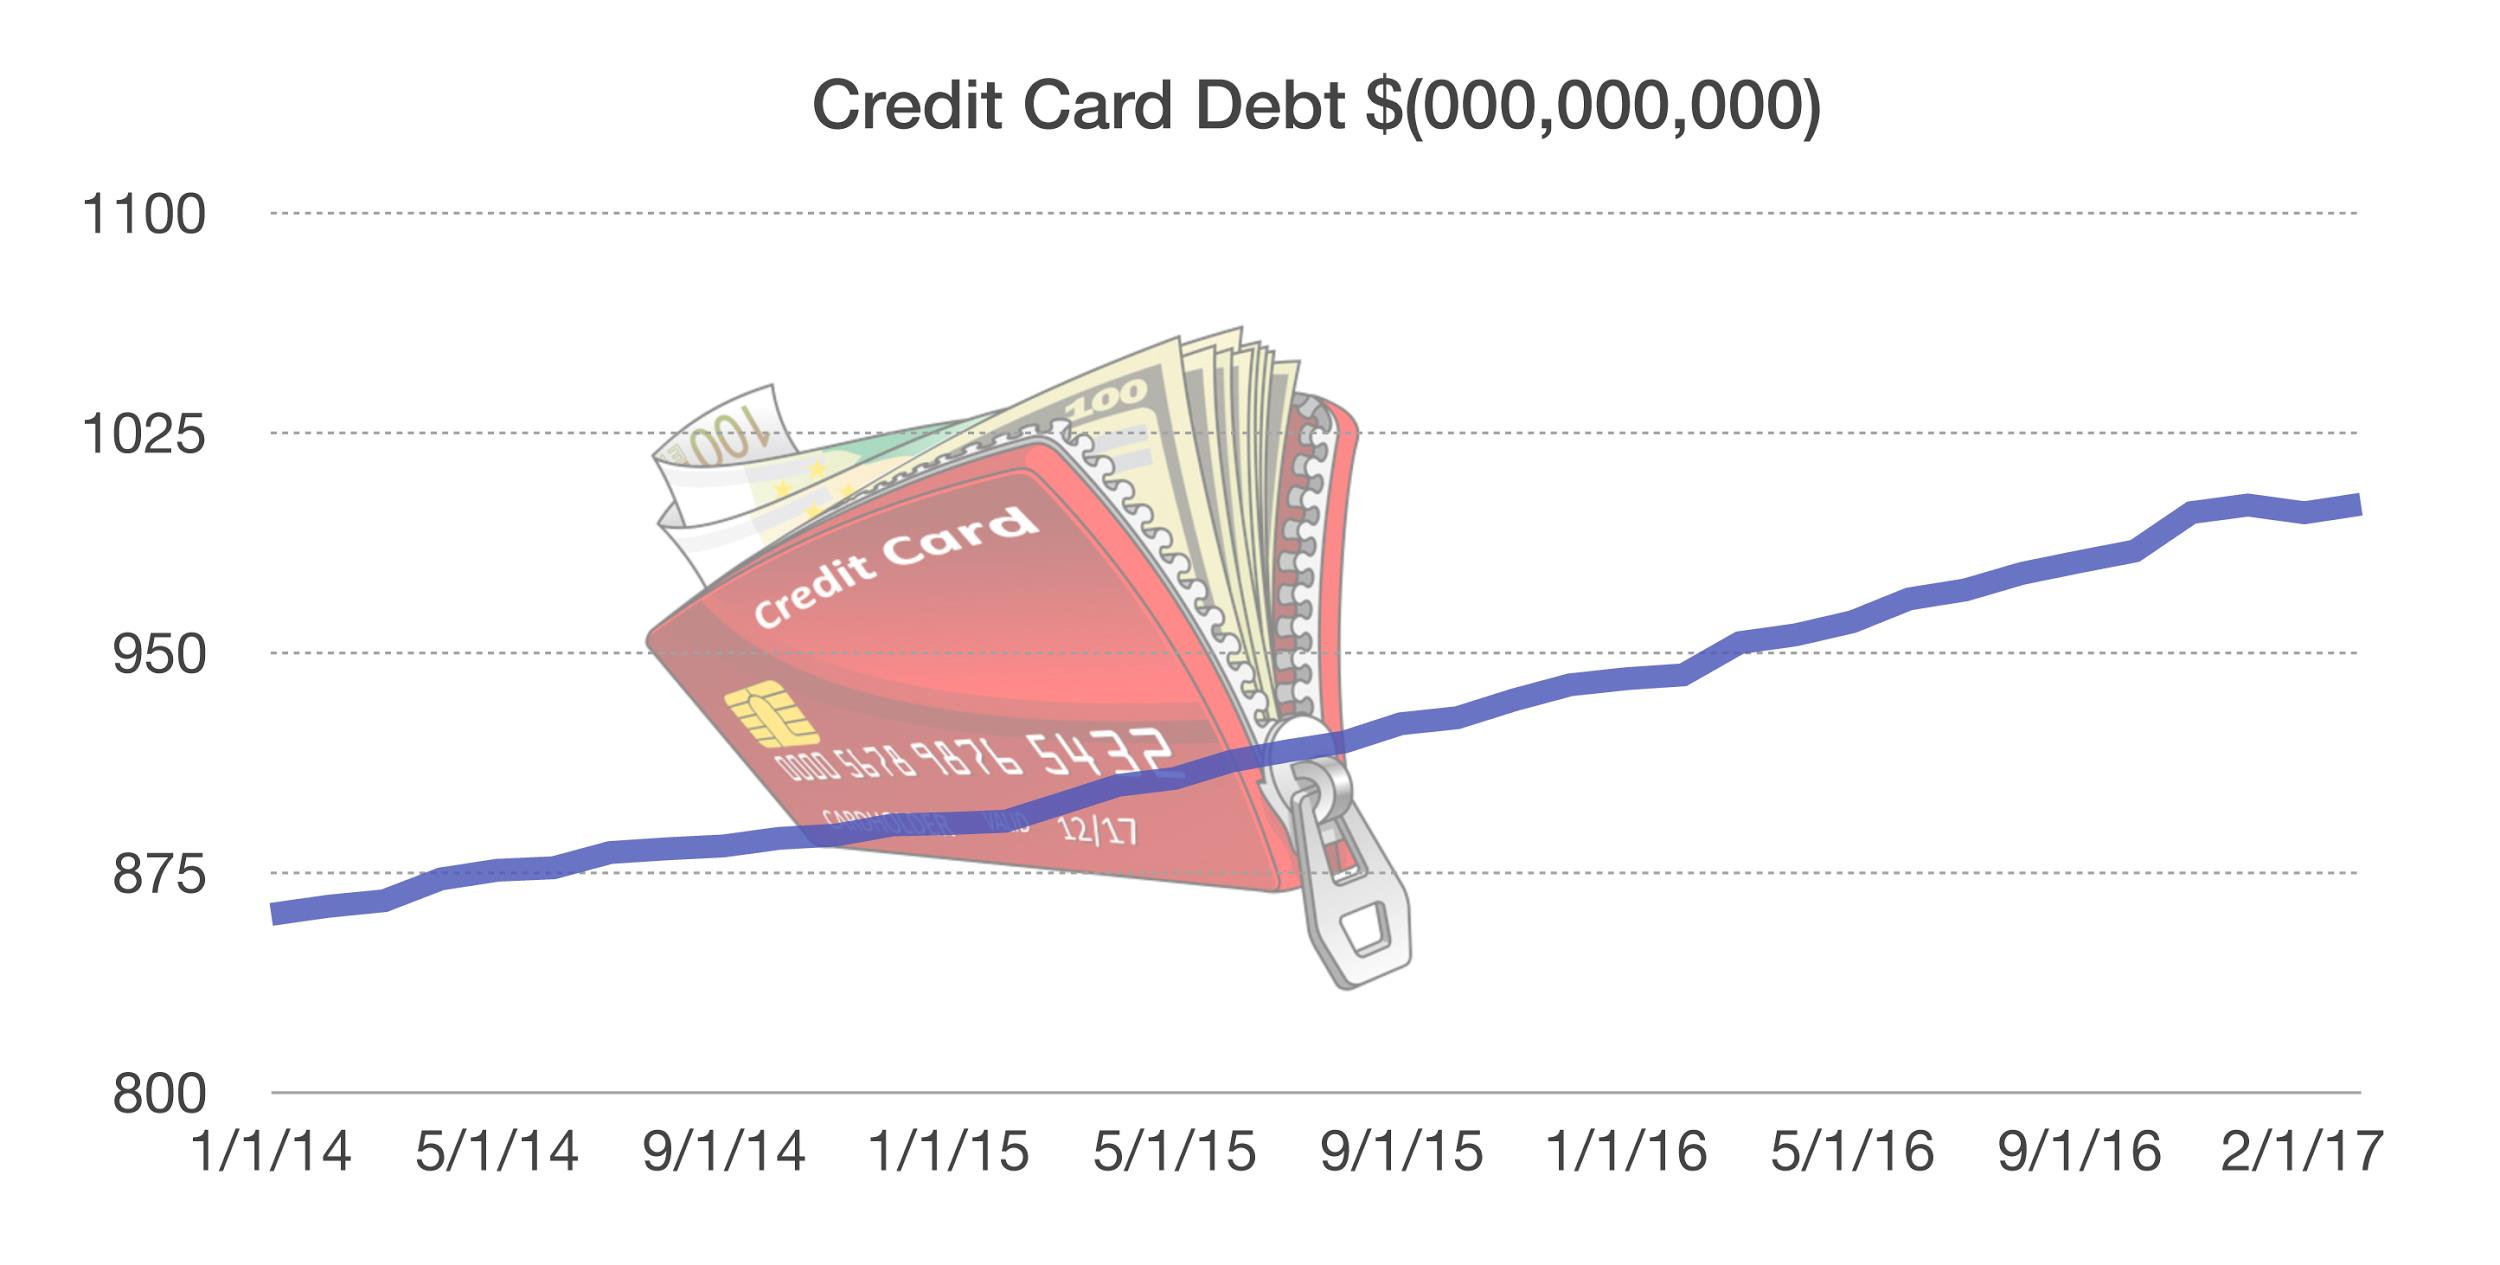 Over The Past Couple Of Years So Has Appeal To Hold Debt Federal Reserve Data Shows That US Consumers Now Have 1 Trillion On Credit Cards